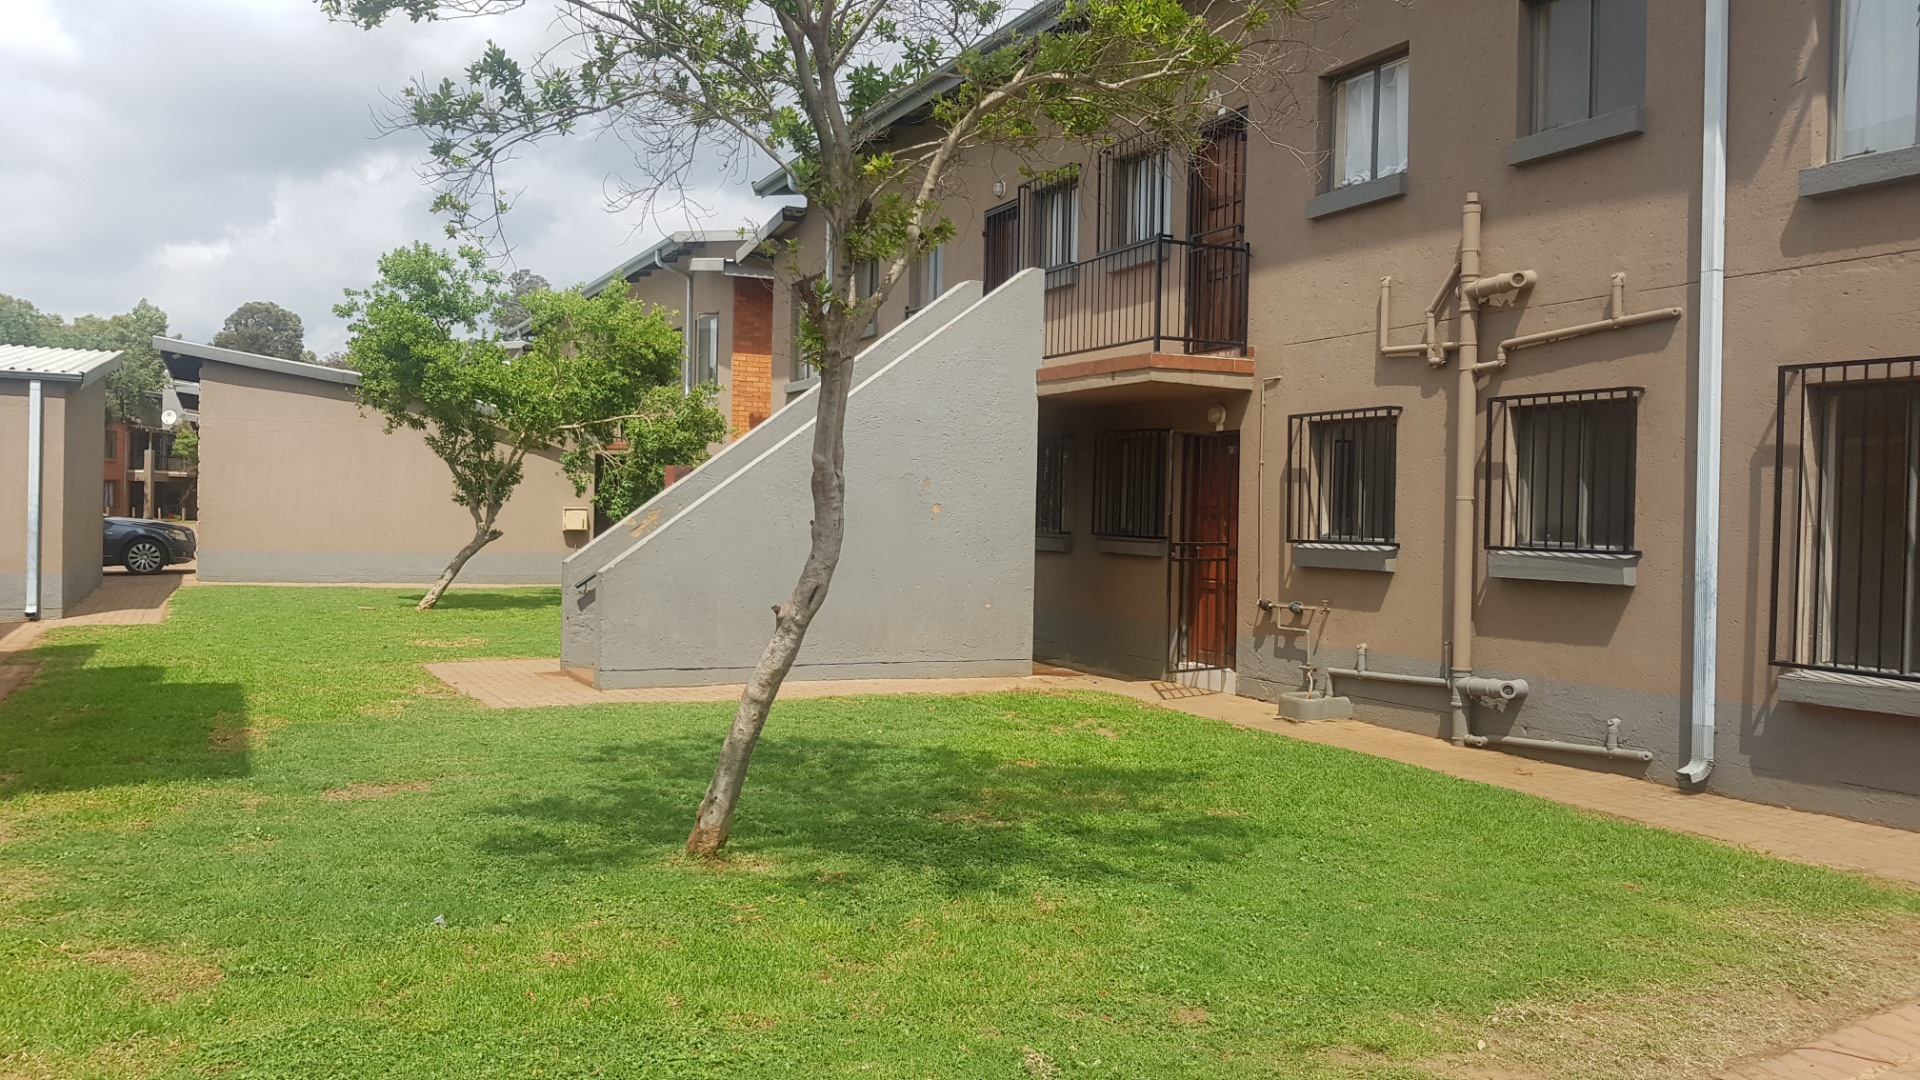 2 Bedroom Apartment / Flat For Sale in Theresapark